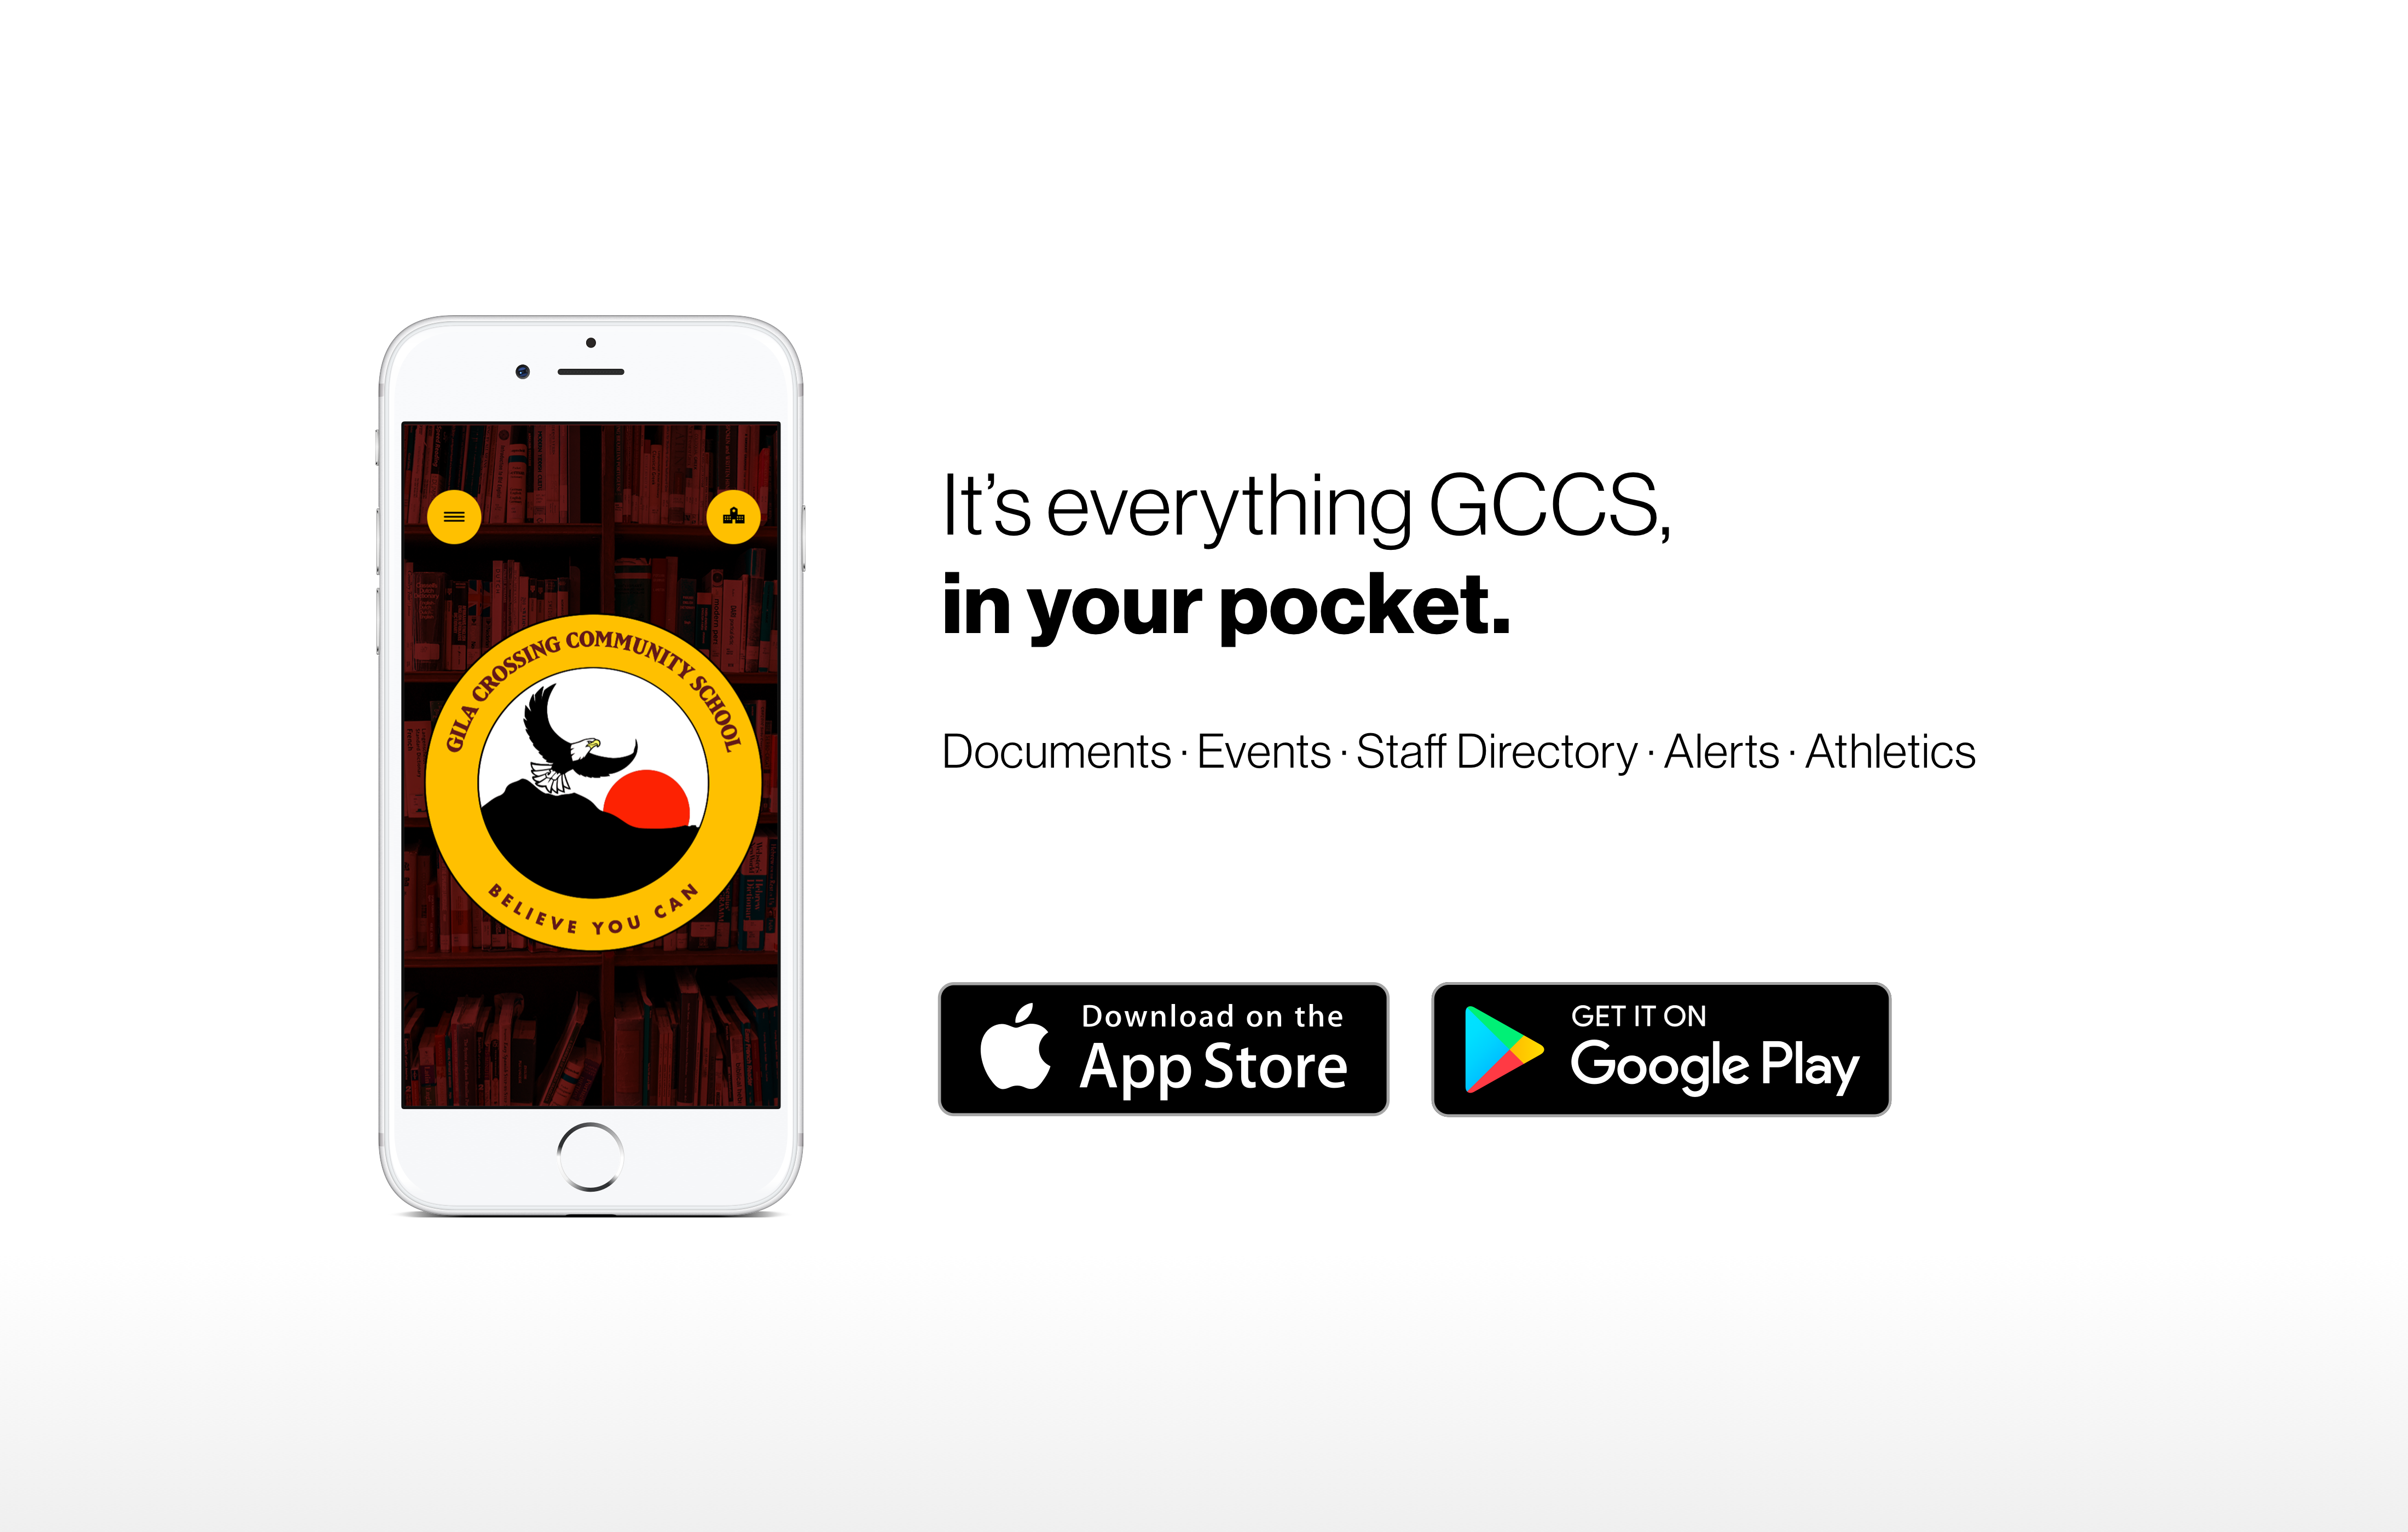 Mobile App Promo Poster - It's Everything GCCS in your pocket